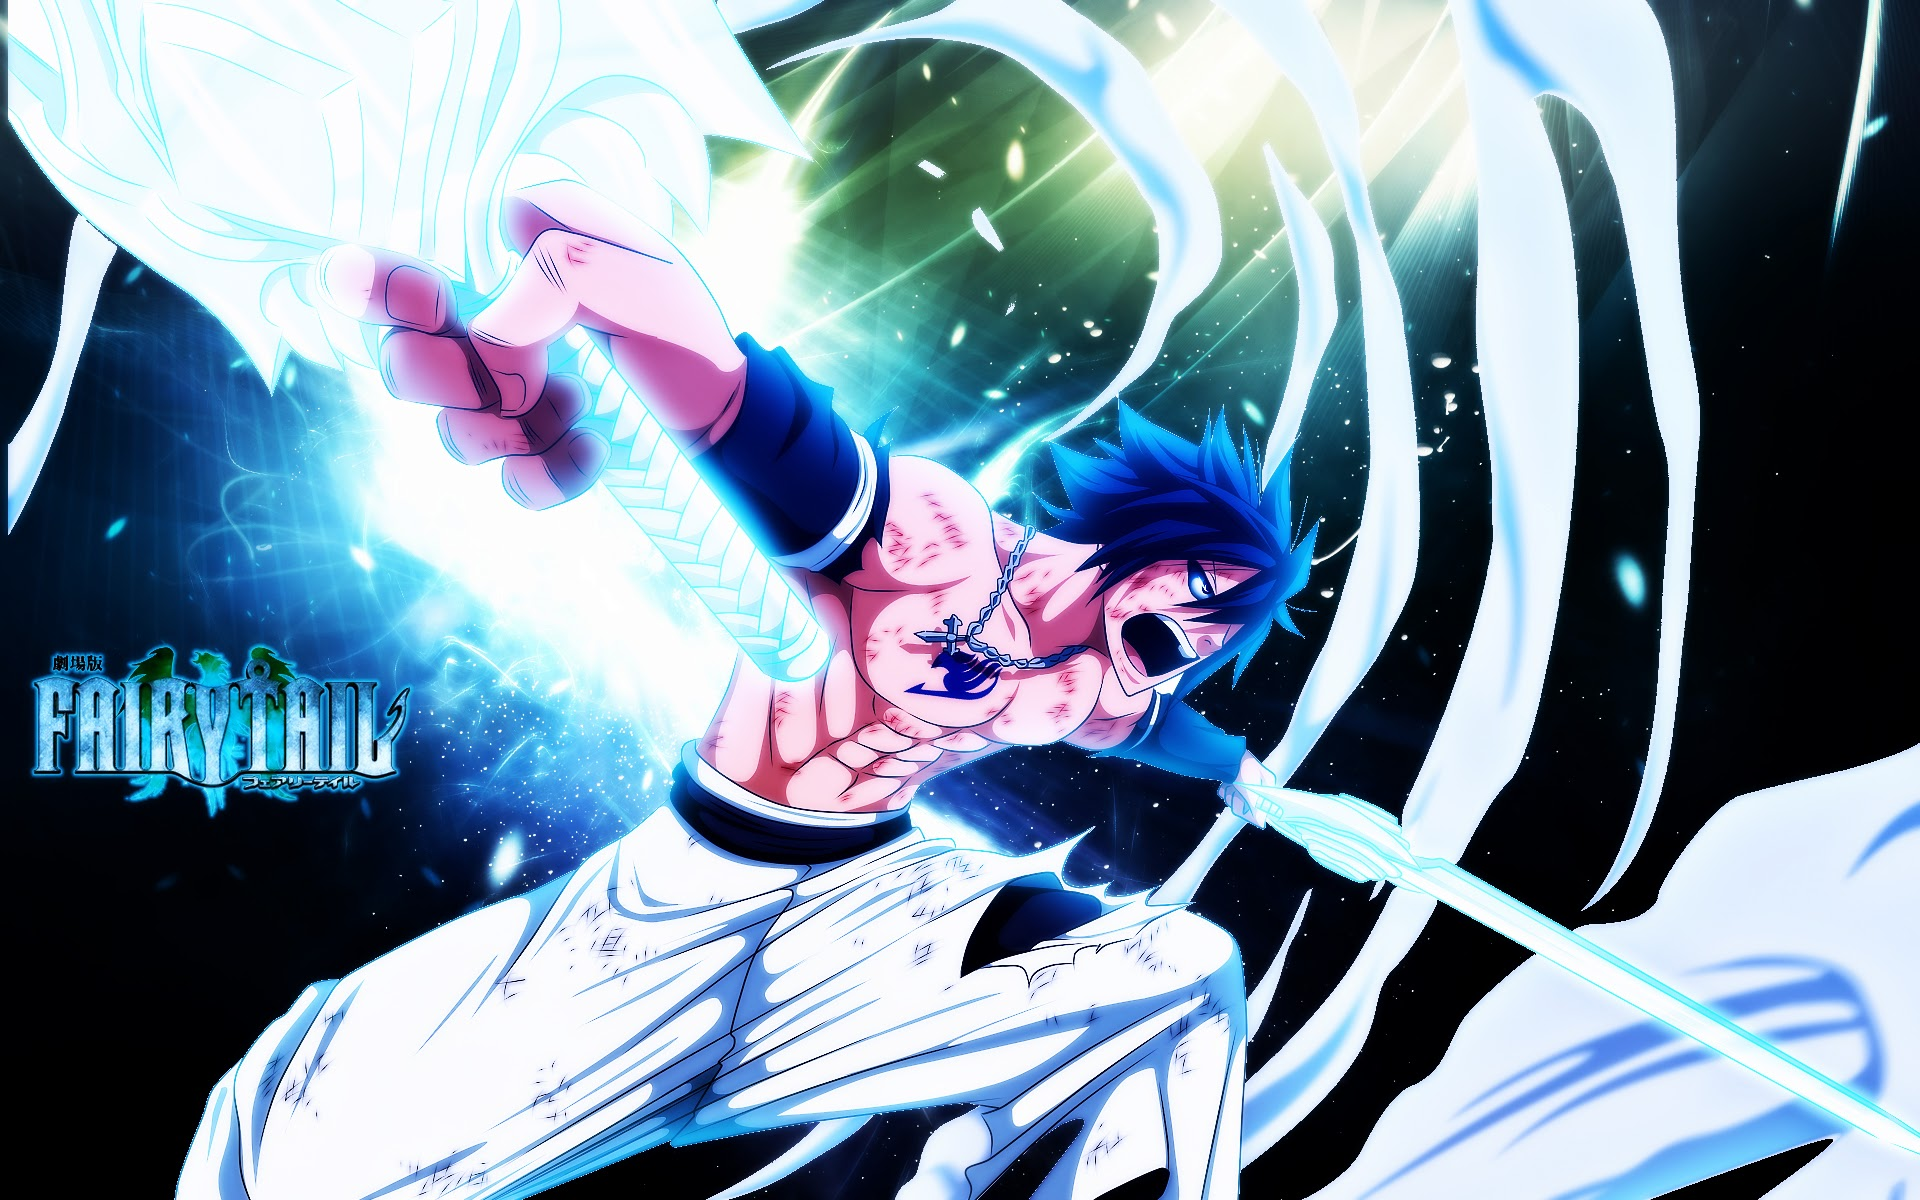 gray fullbuster anime fairy tail hd wallpaper image picture 1920x1200 1920x1200